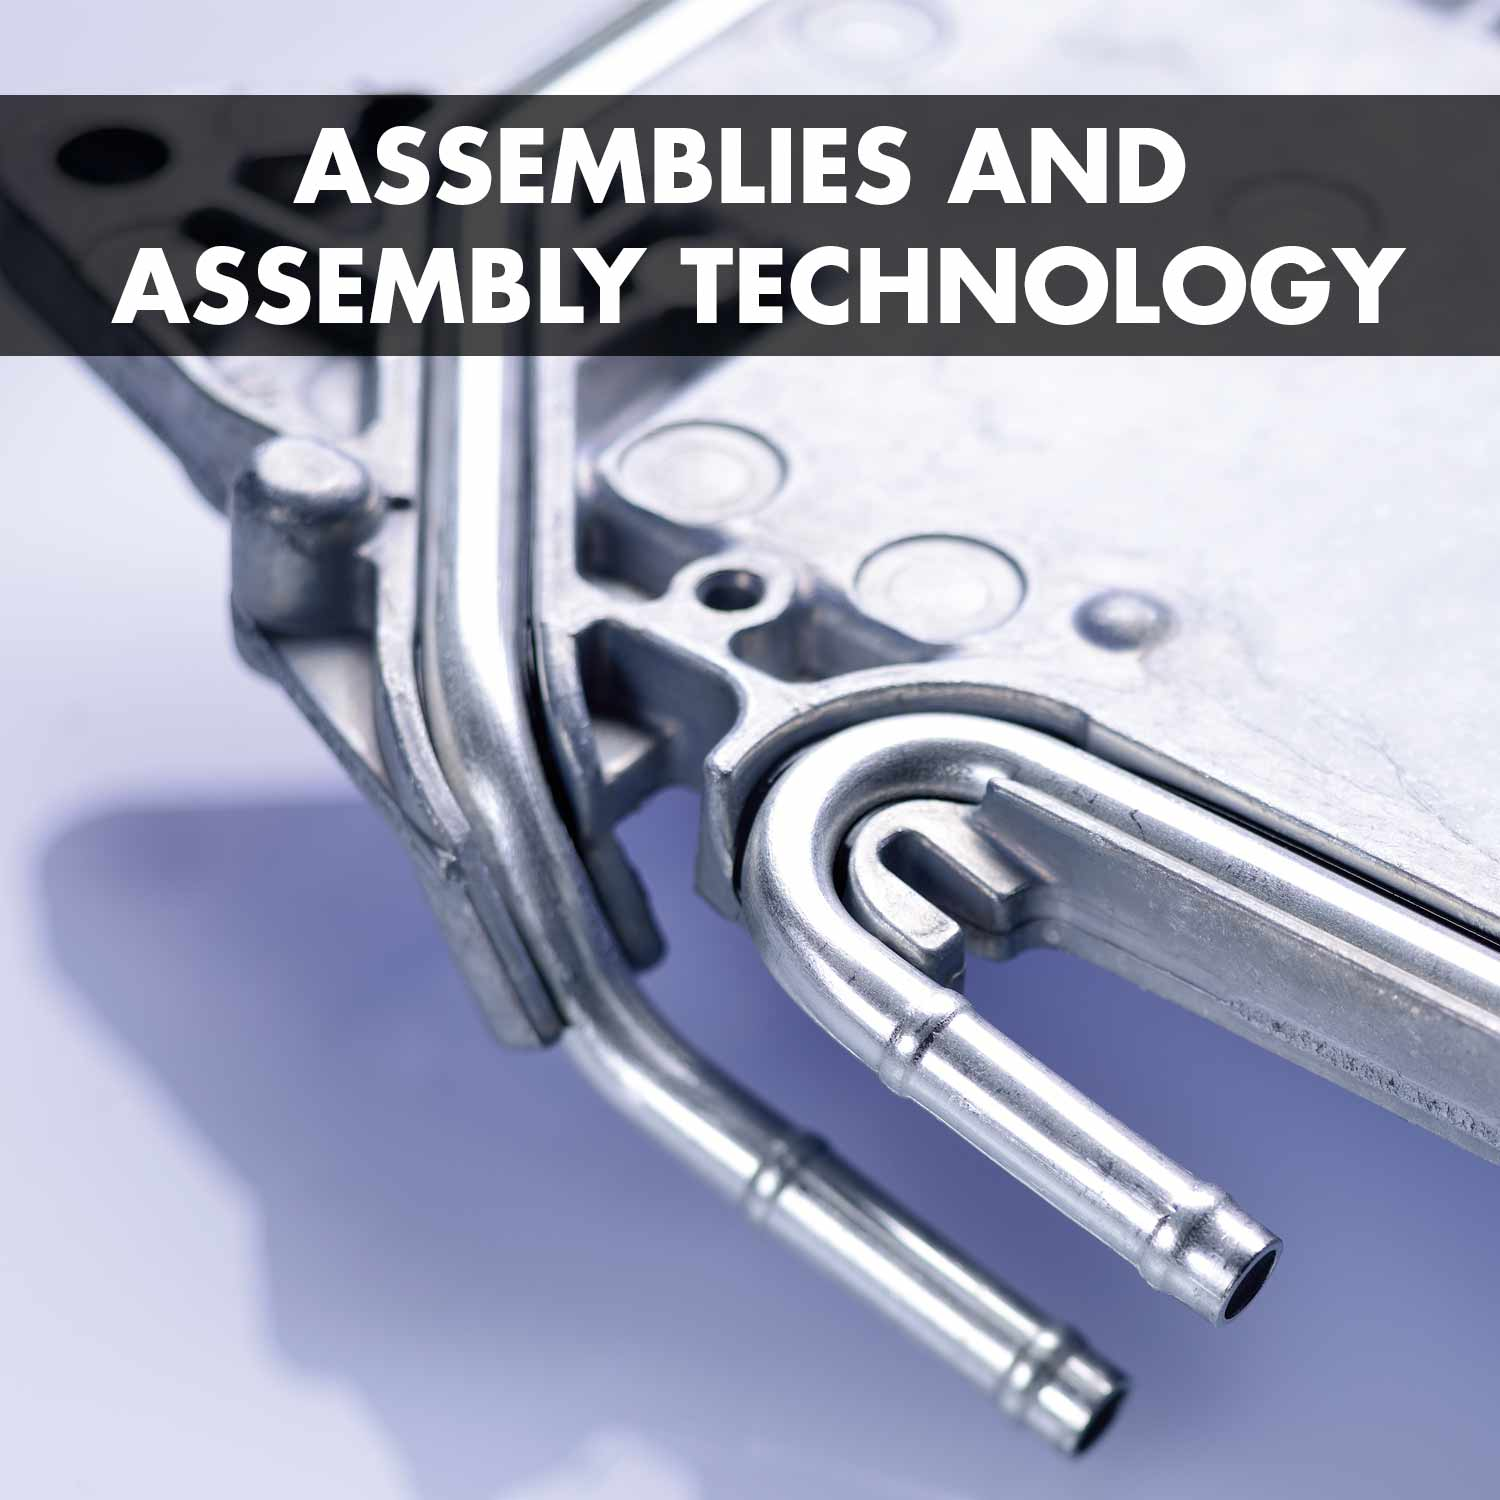 Component assemblies and assembly technology: Upstream and downstream process steps in combination with our technologies.